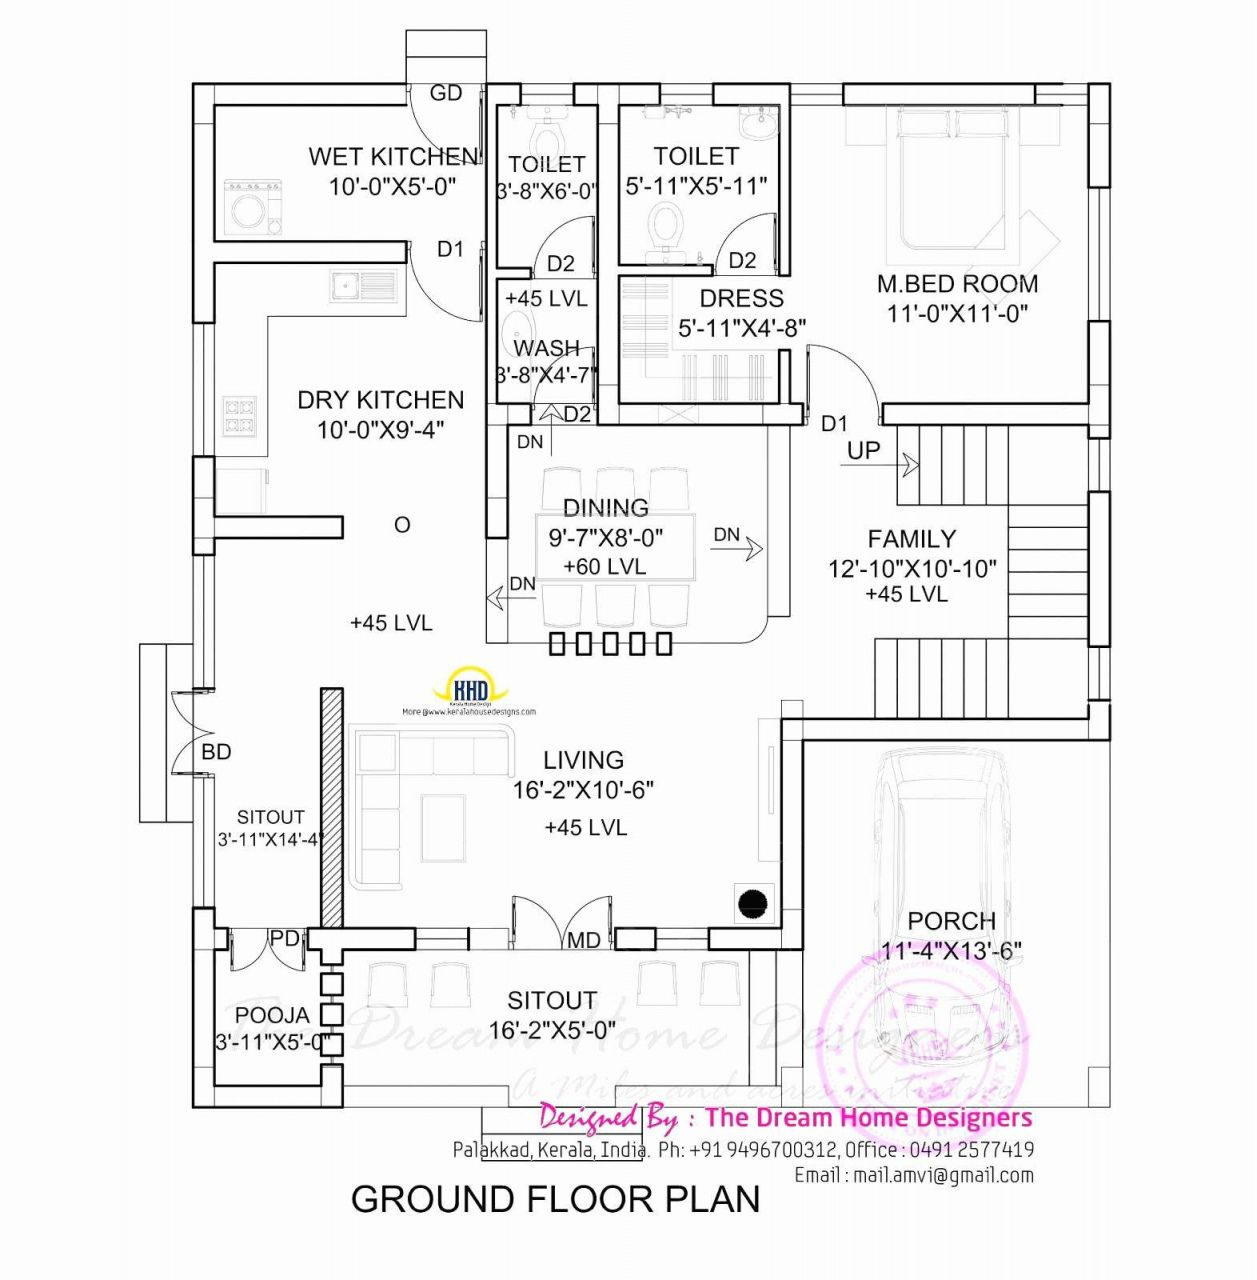 201 20000 Sq Ft House Plans 2018 My House Plans House Plans